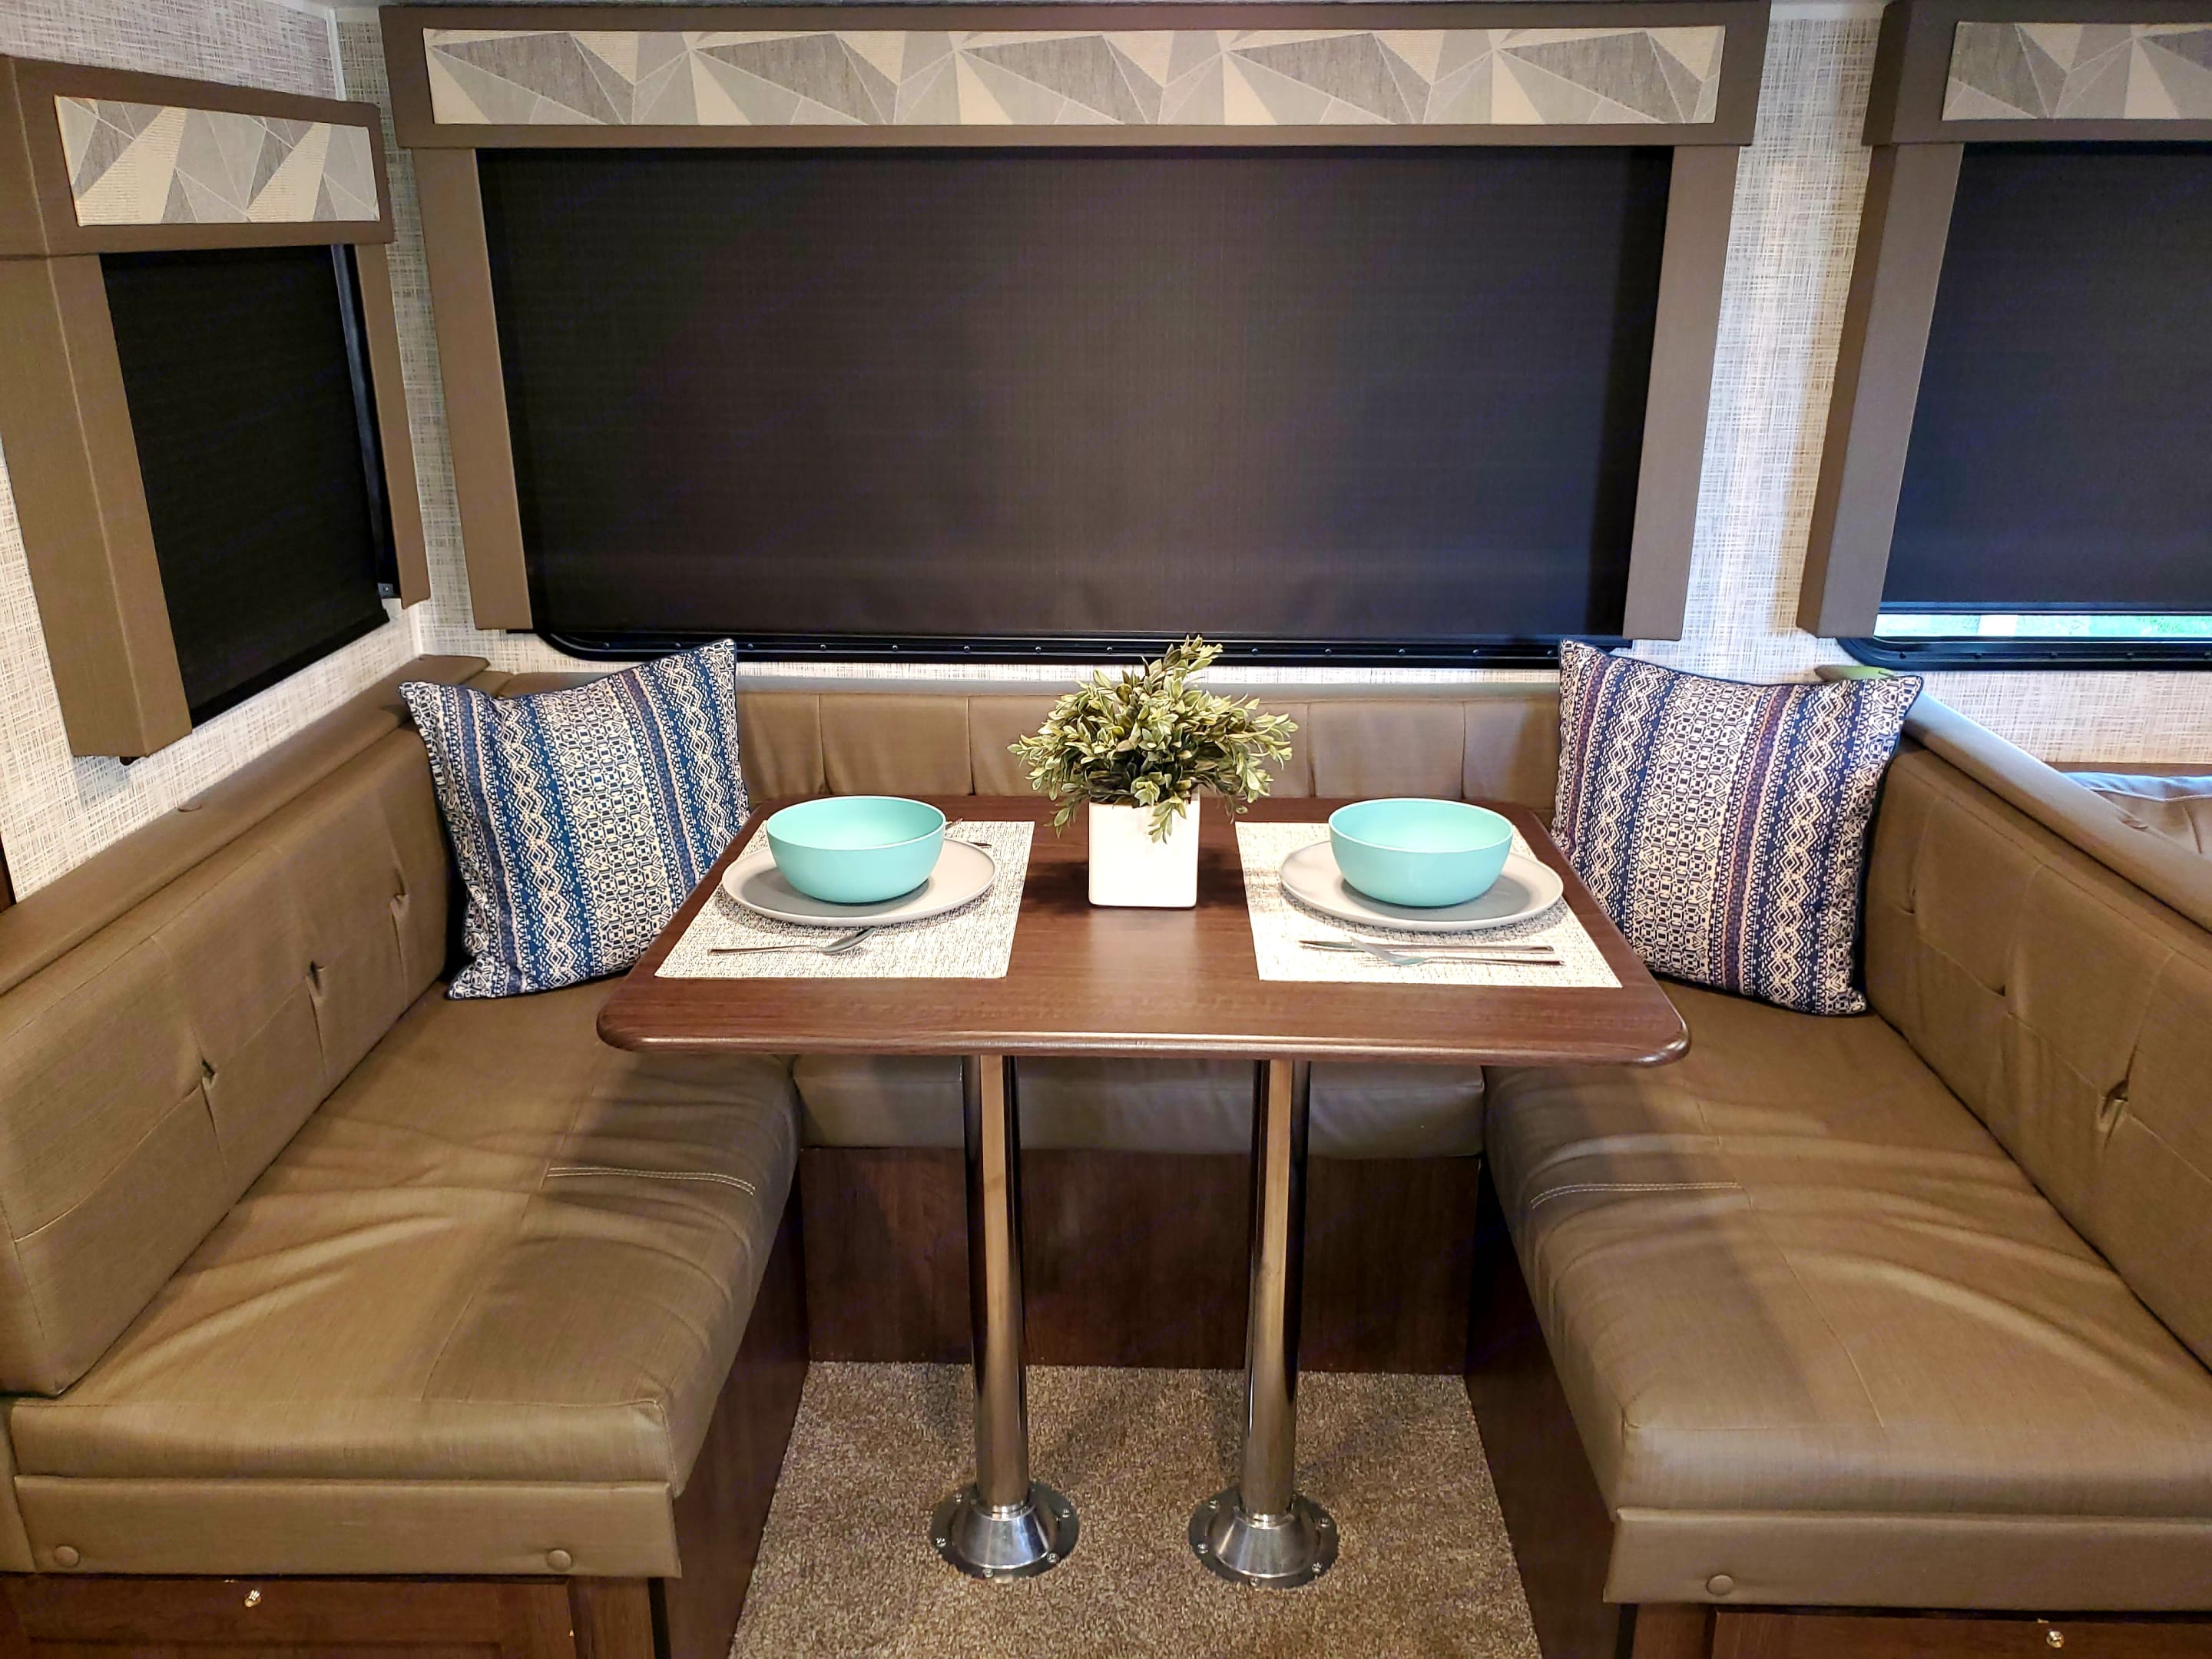 Table folds into sleeping area for 2 small/ medium people. Forest River Salem Cruise Lite 2020